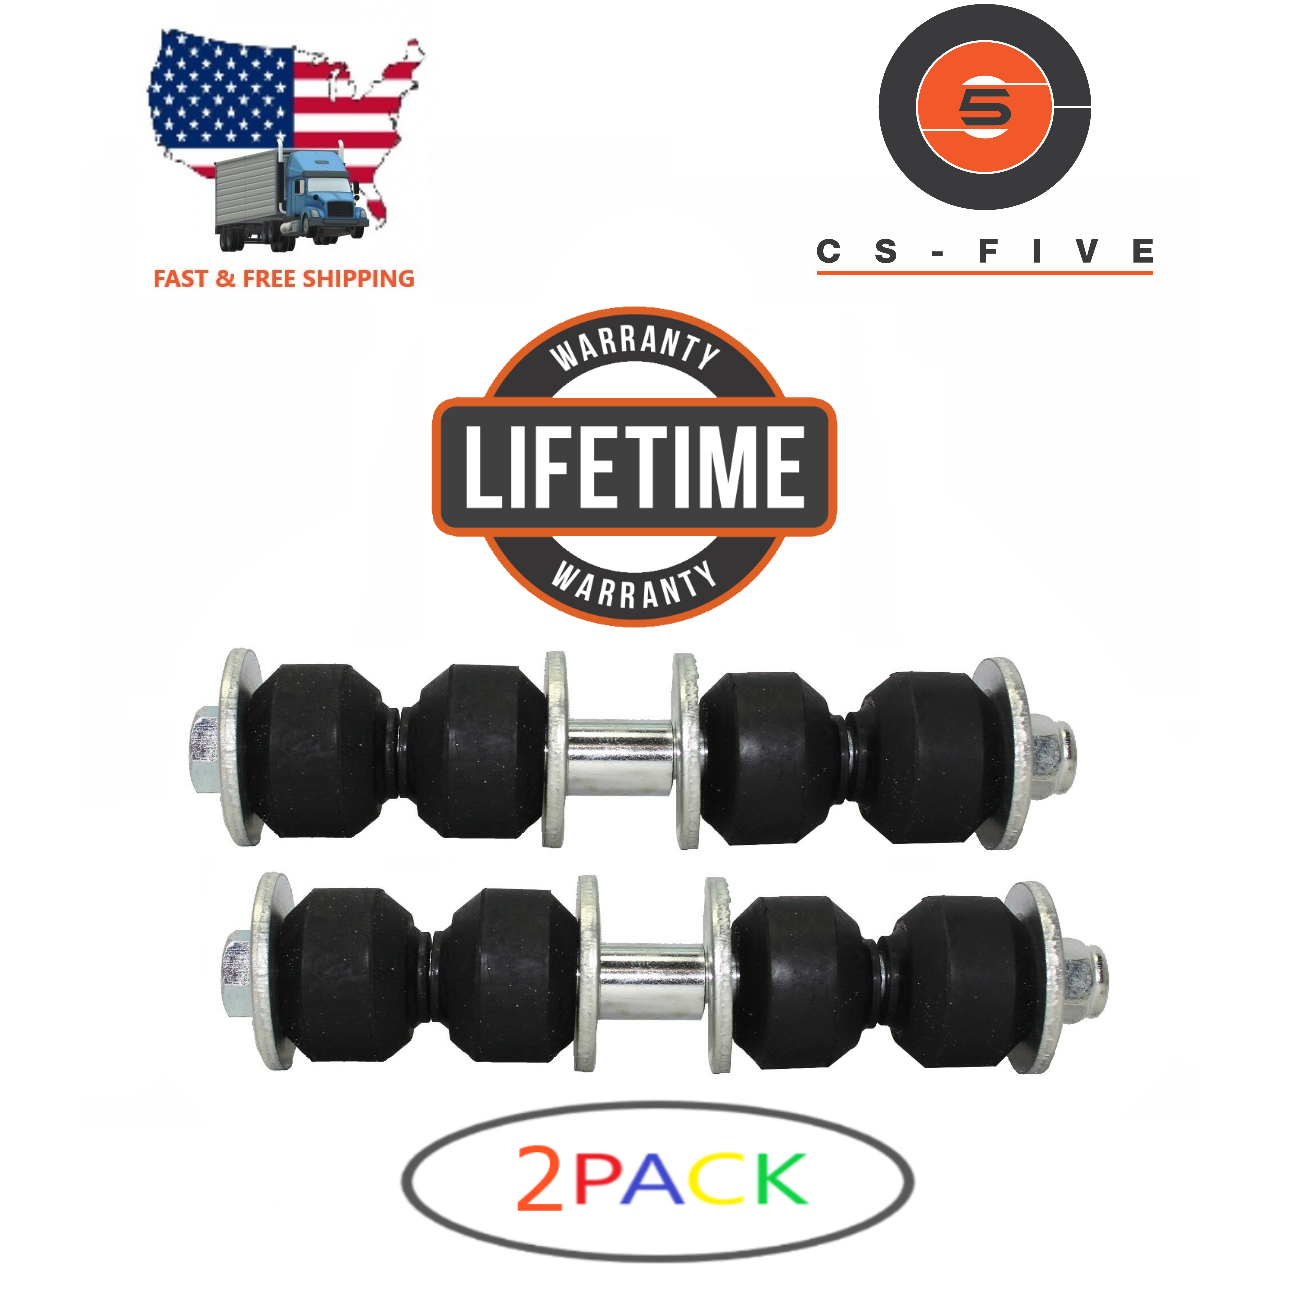 LIFETIME 2 New Front Sway Bar End Stabilizer Link for CHEVY CLASSIC 2004 - 2005  SL232HD